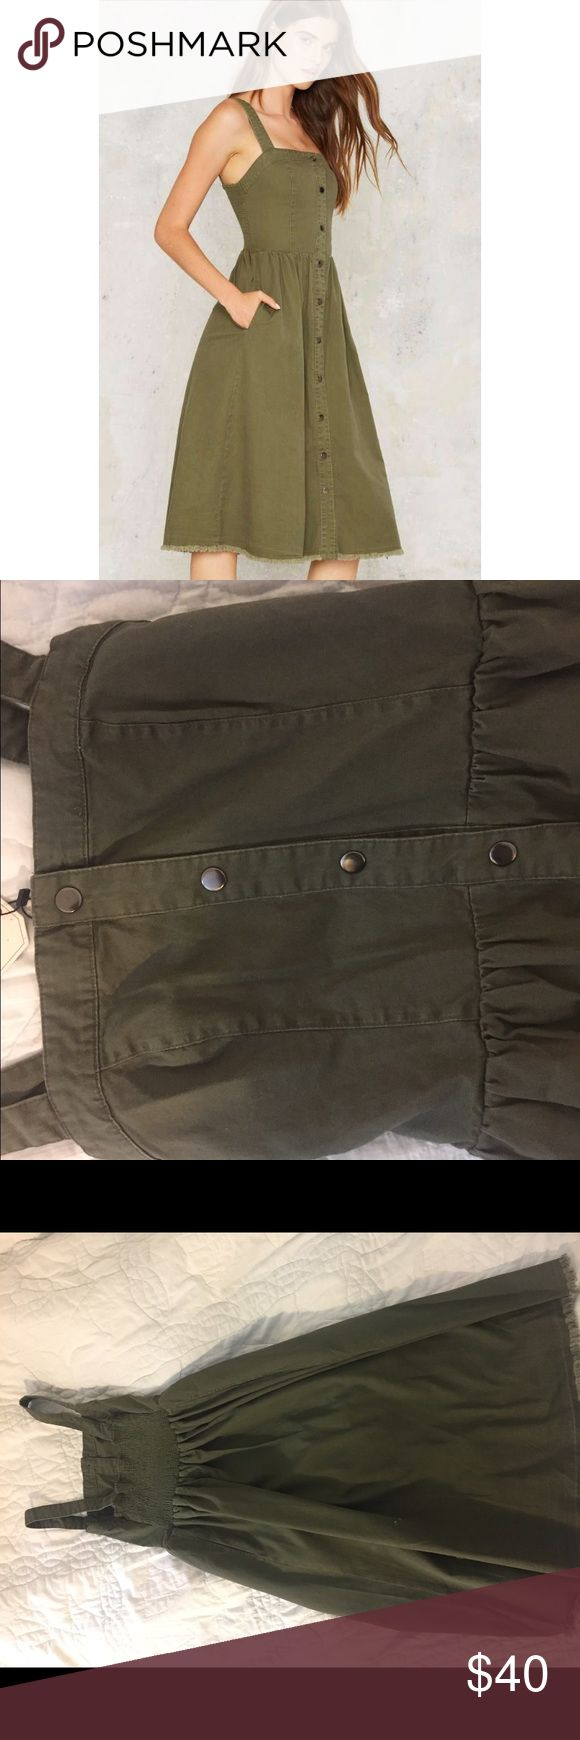 Mo:Vint New York Rashida Denim Midi Dress NEVER WORN, WITH TAGS. Made of olive Denim with trendy full from gunmetal snaps. Elastic back and hits just below the knee. Looks good with sneakers, sandals or heels! Nasty Gal Dresses Midi